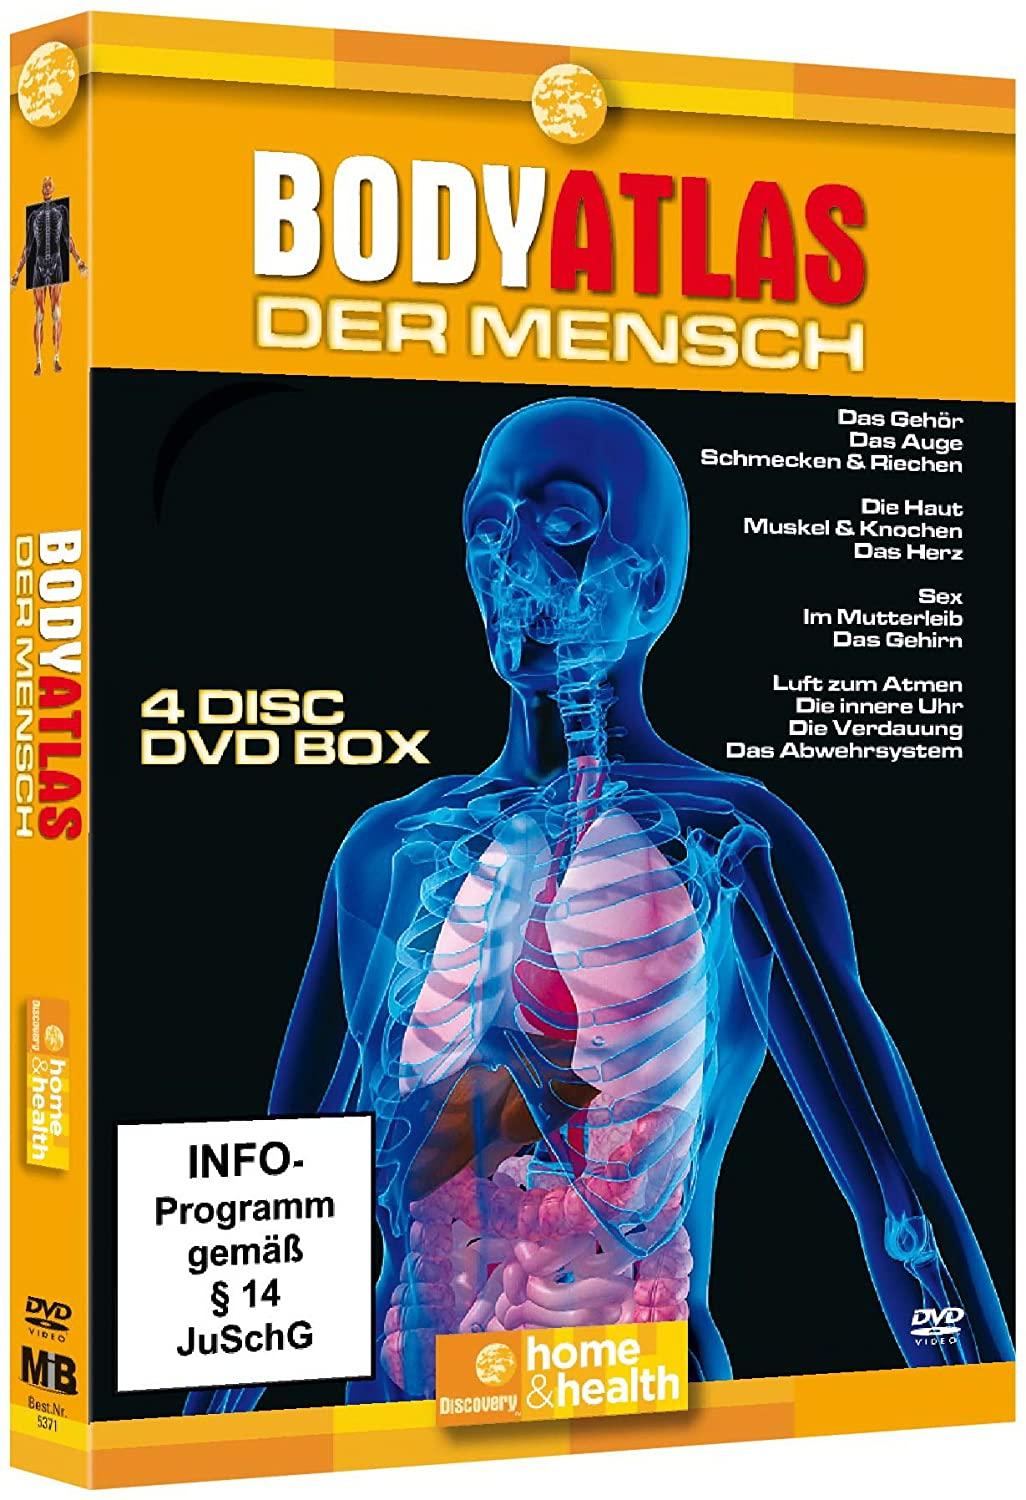 Bodyatlas Box (4 DVDs): Amazon.de: Dokumentation: DVD & Blu-ray